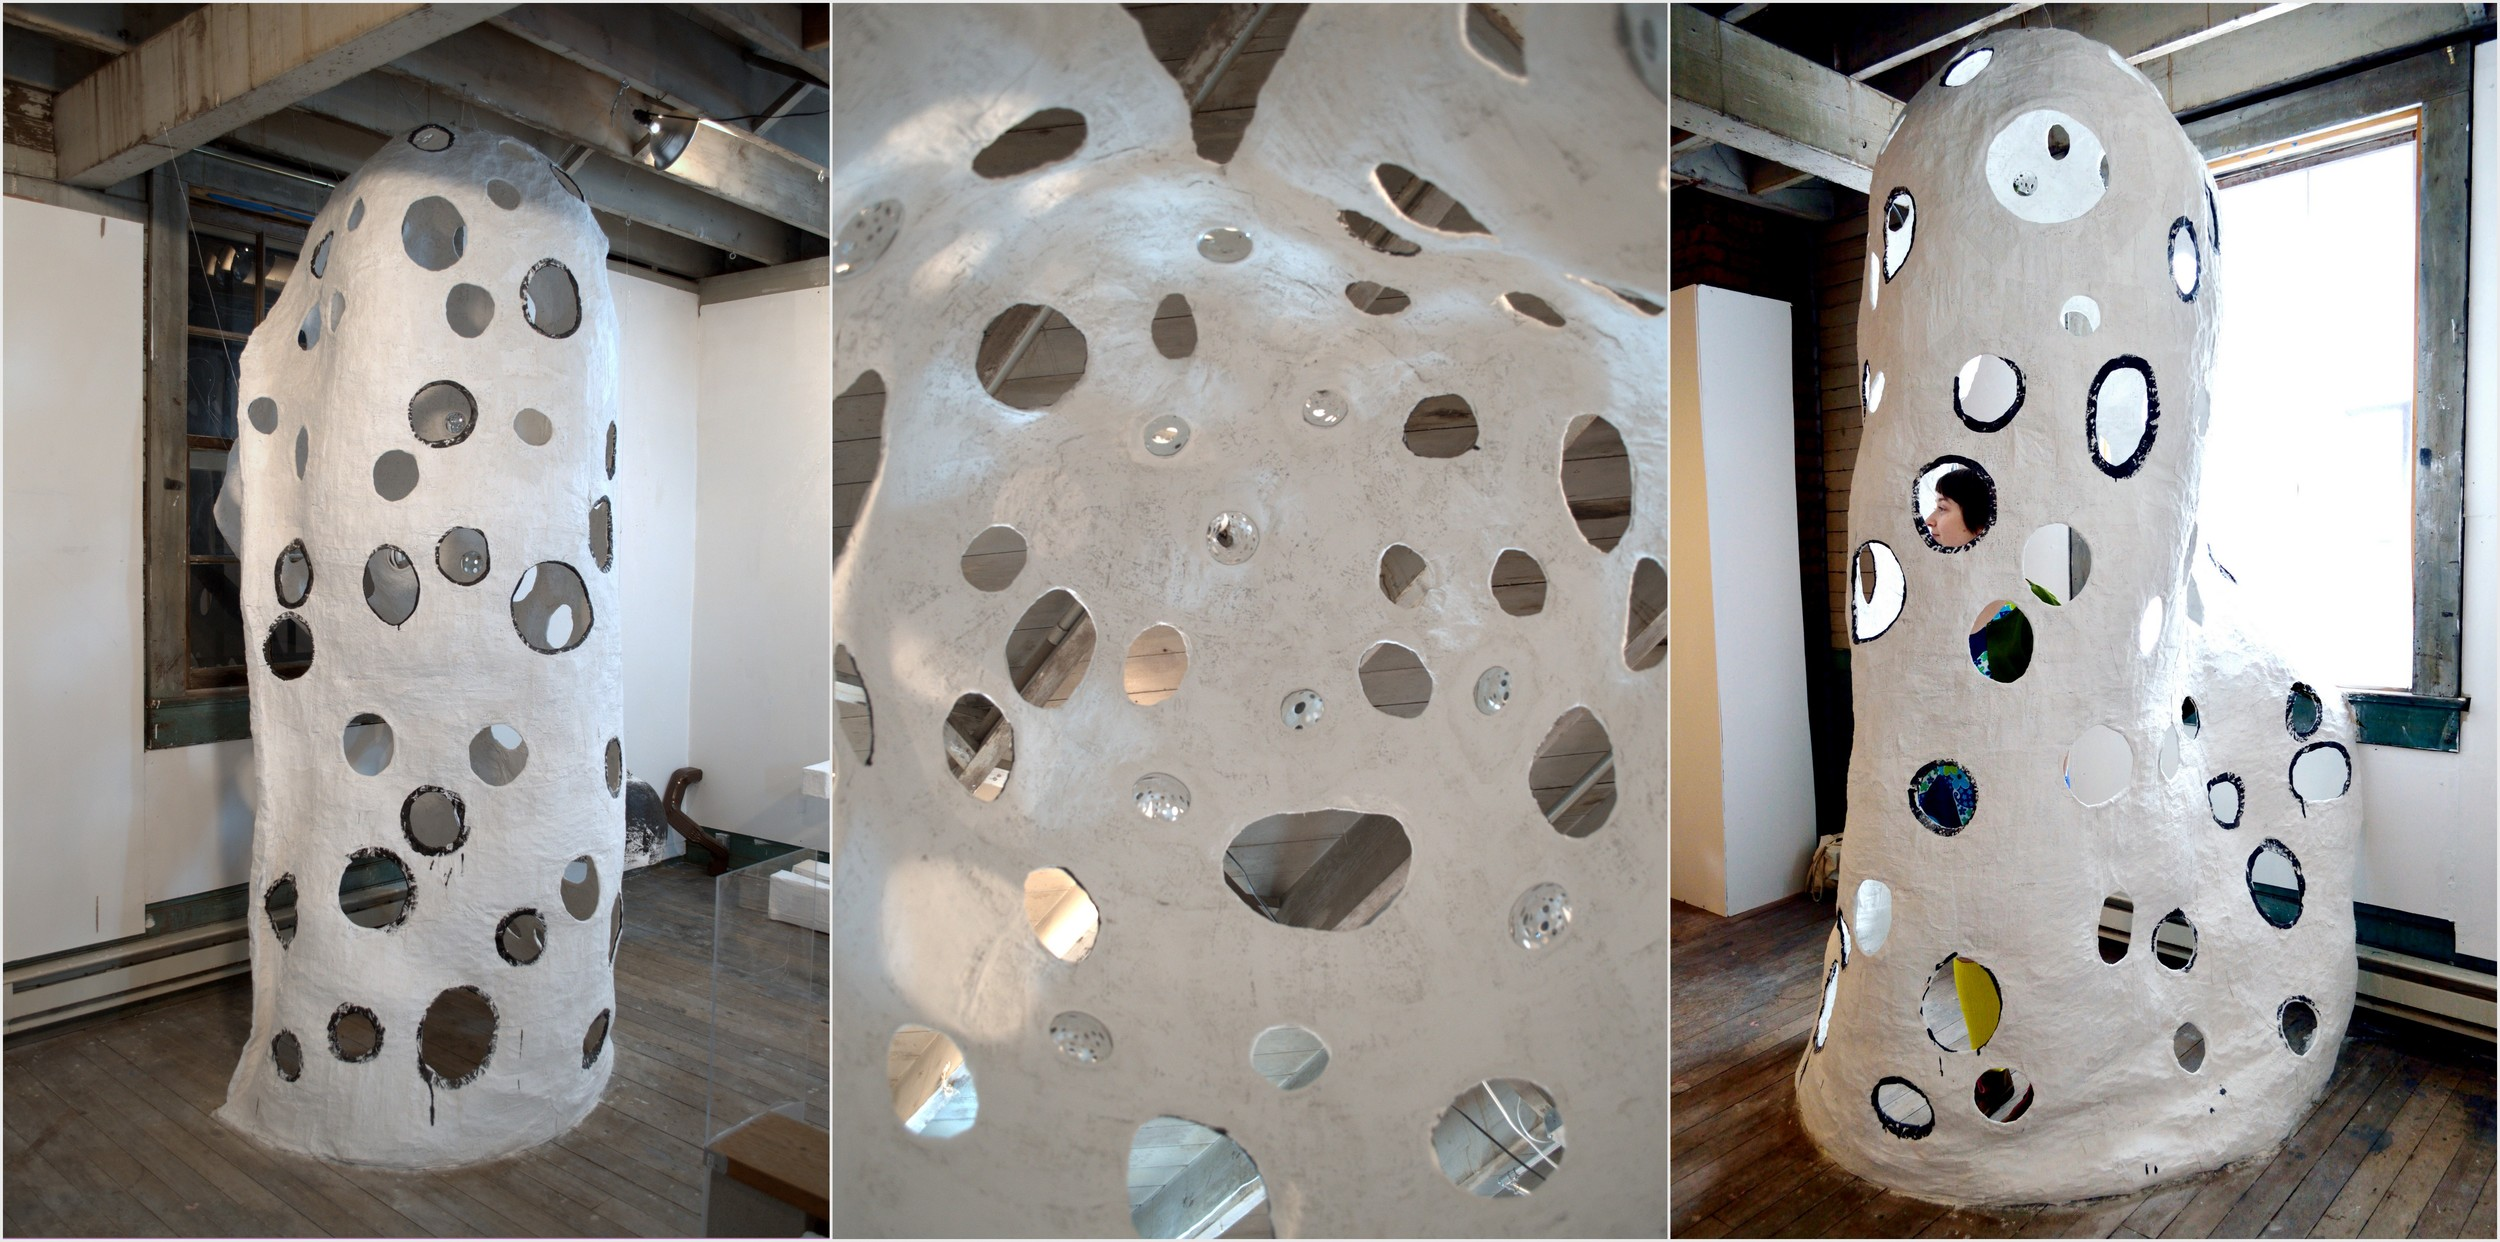 Permeable Paraboloid (i like to see infinity), 2013.  left exterior; interior dome ceiling; right exterior. plaster, wire, convex mirrors, gauze, paint.